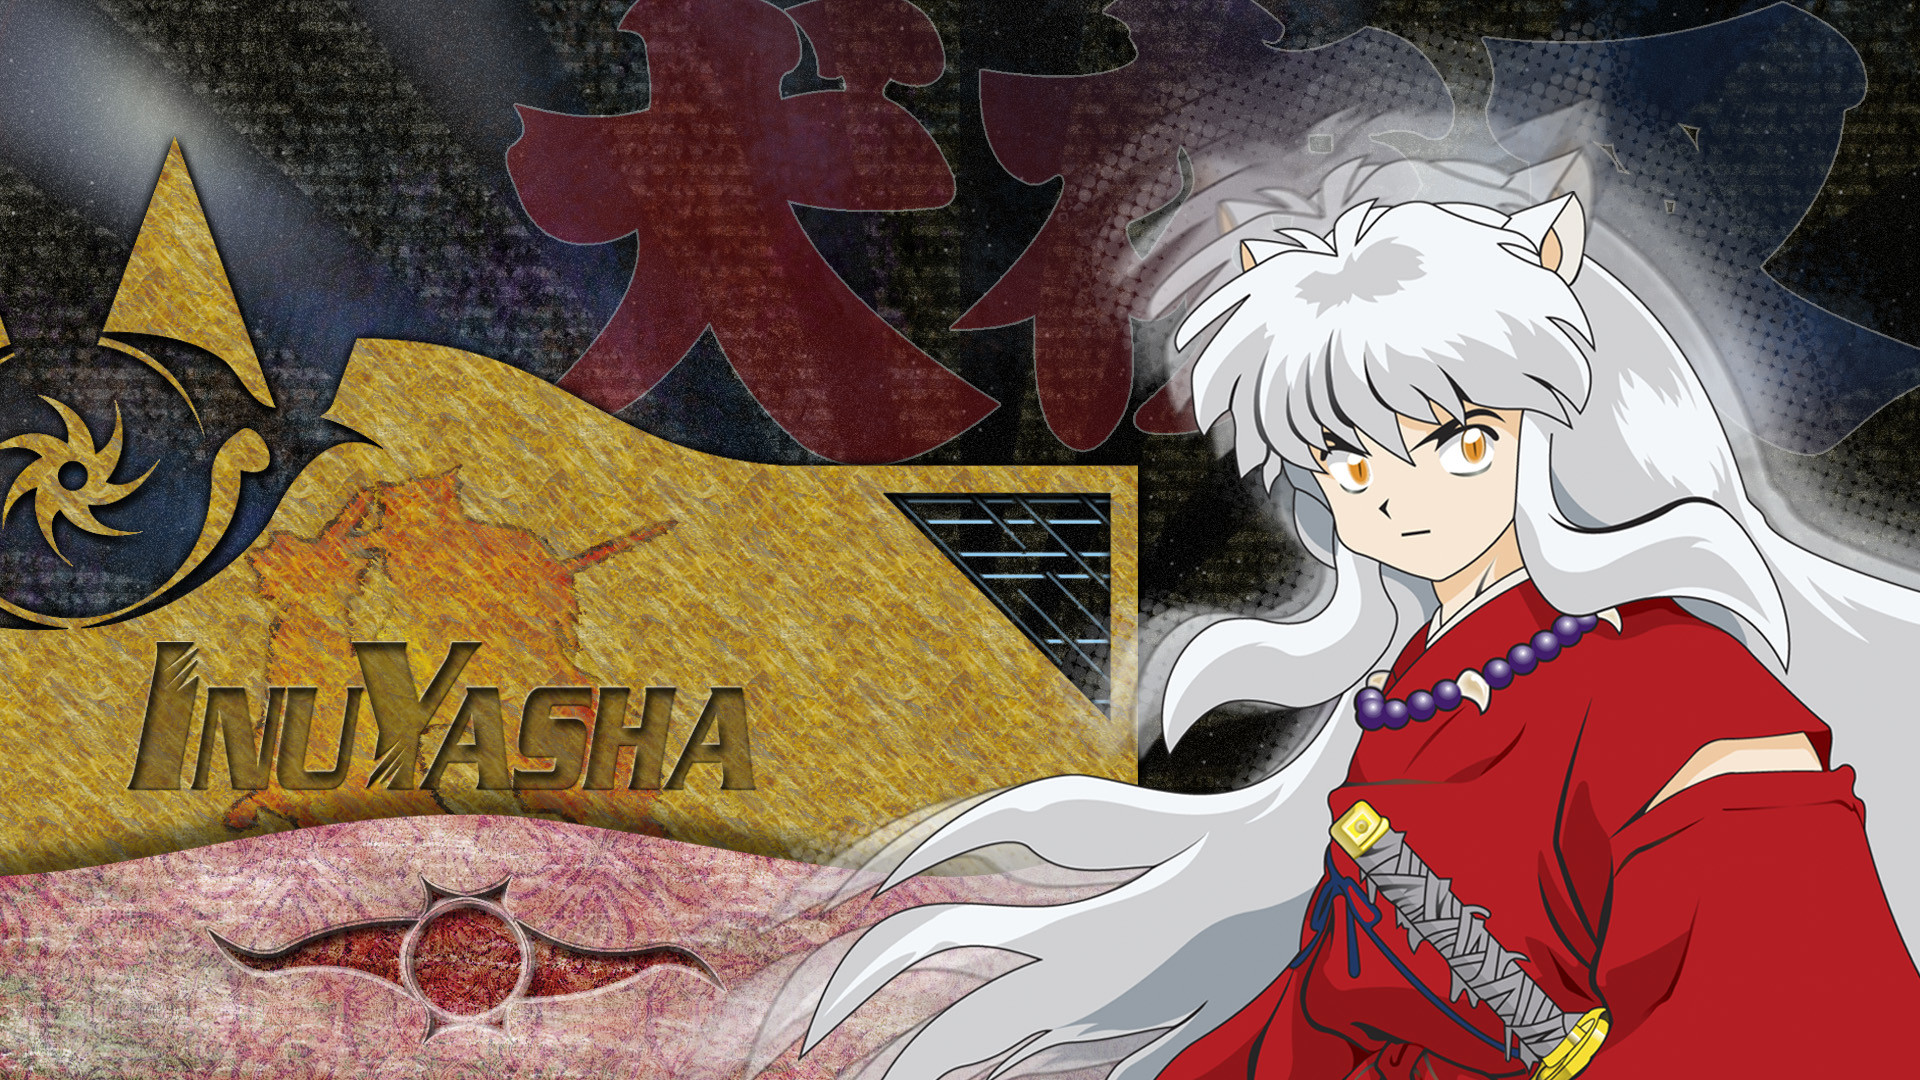 1920x1080 Inuyasha wallpaper 3